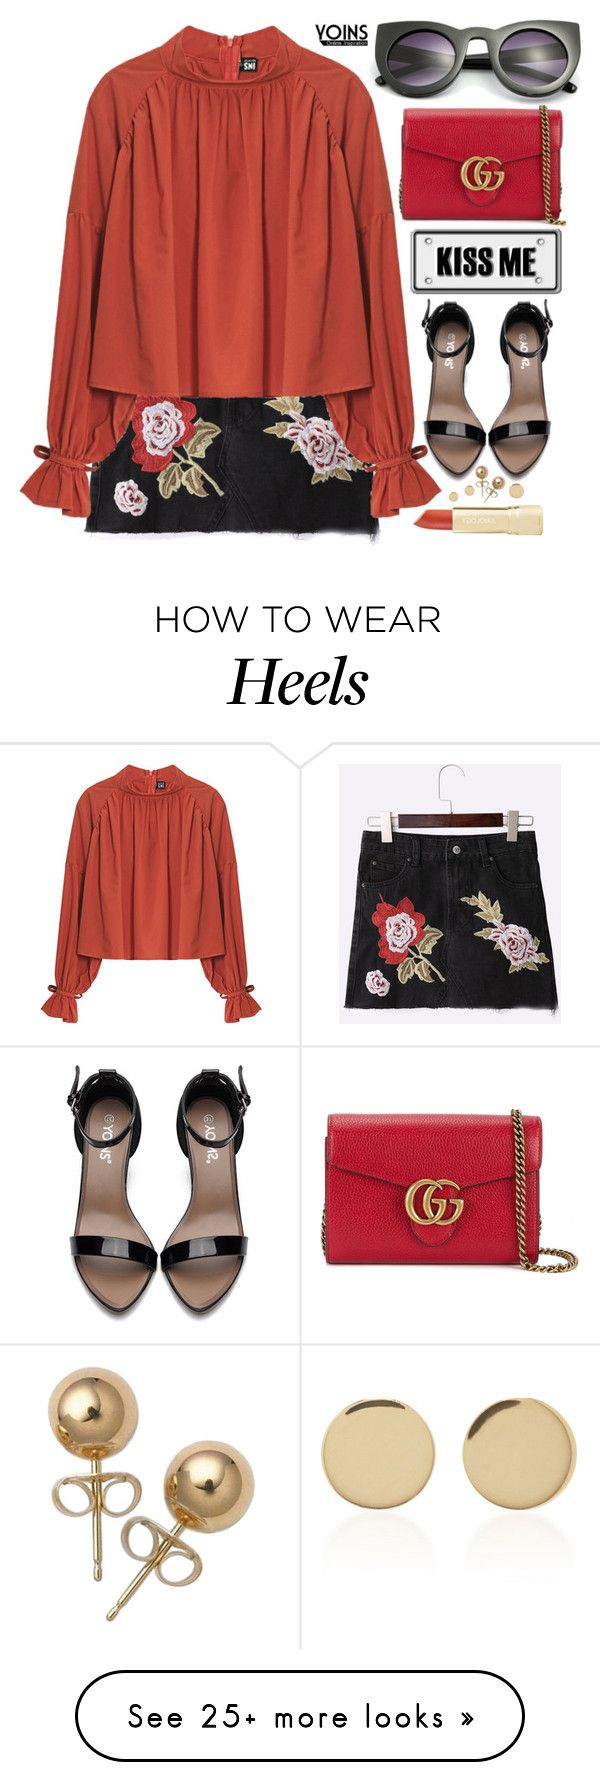 """""""Summer Romance... Yoins"""" by pastelneon on Polyvore featuring Gucci, Bling Jewelry, Magdalena Frackowiak, yoins, yoinscollection and loveyoins"""